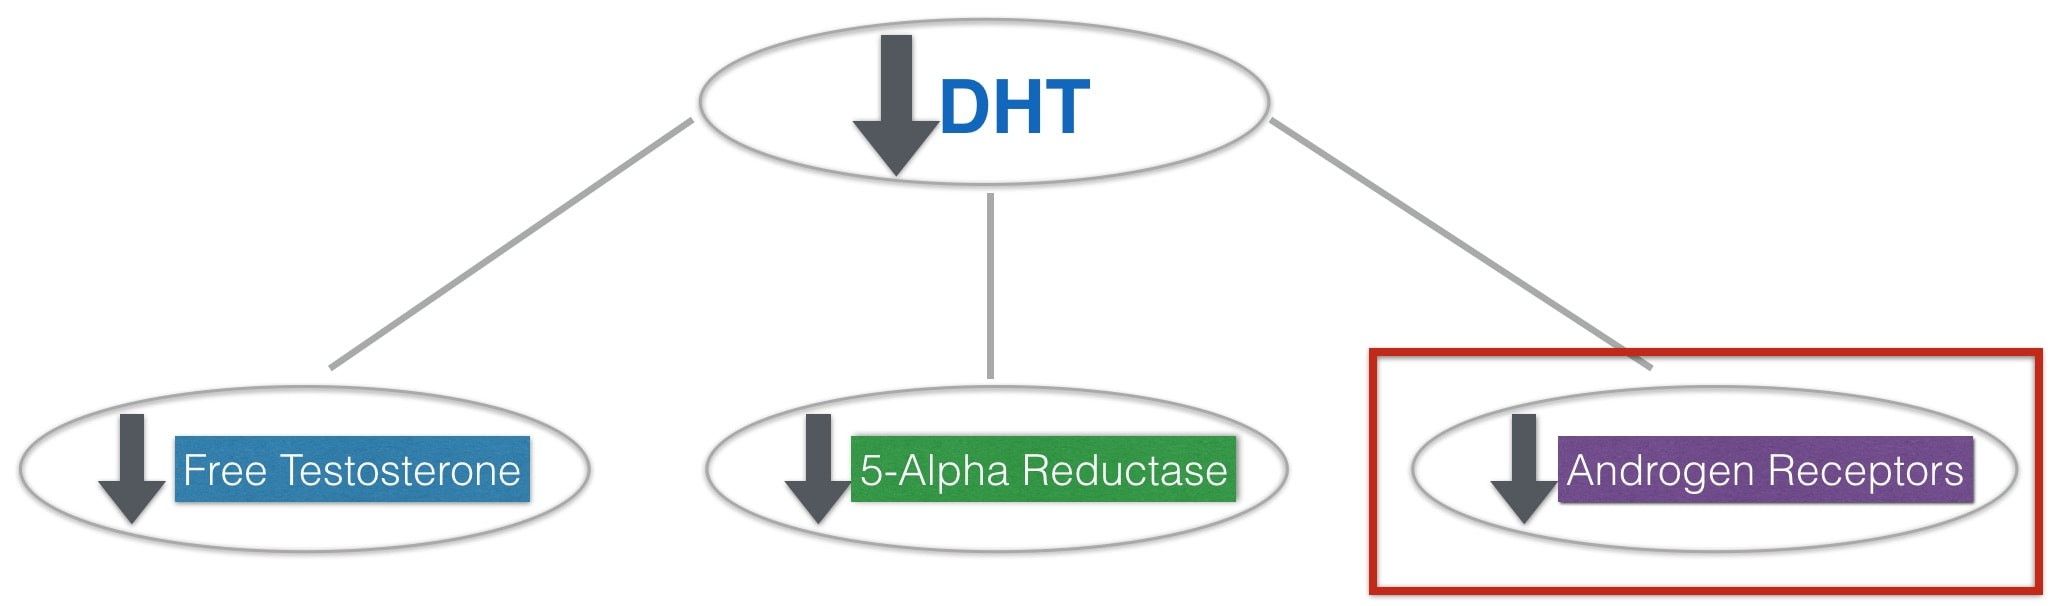 Attack DHT: A Master Guide To Blocking Androgen Receptors